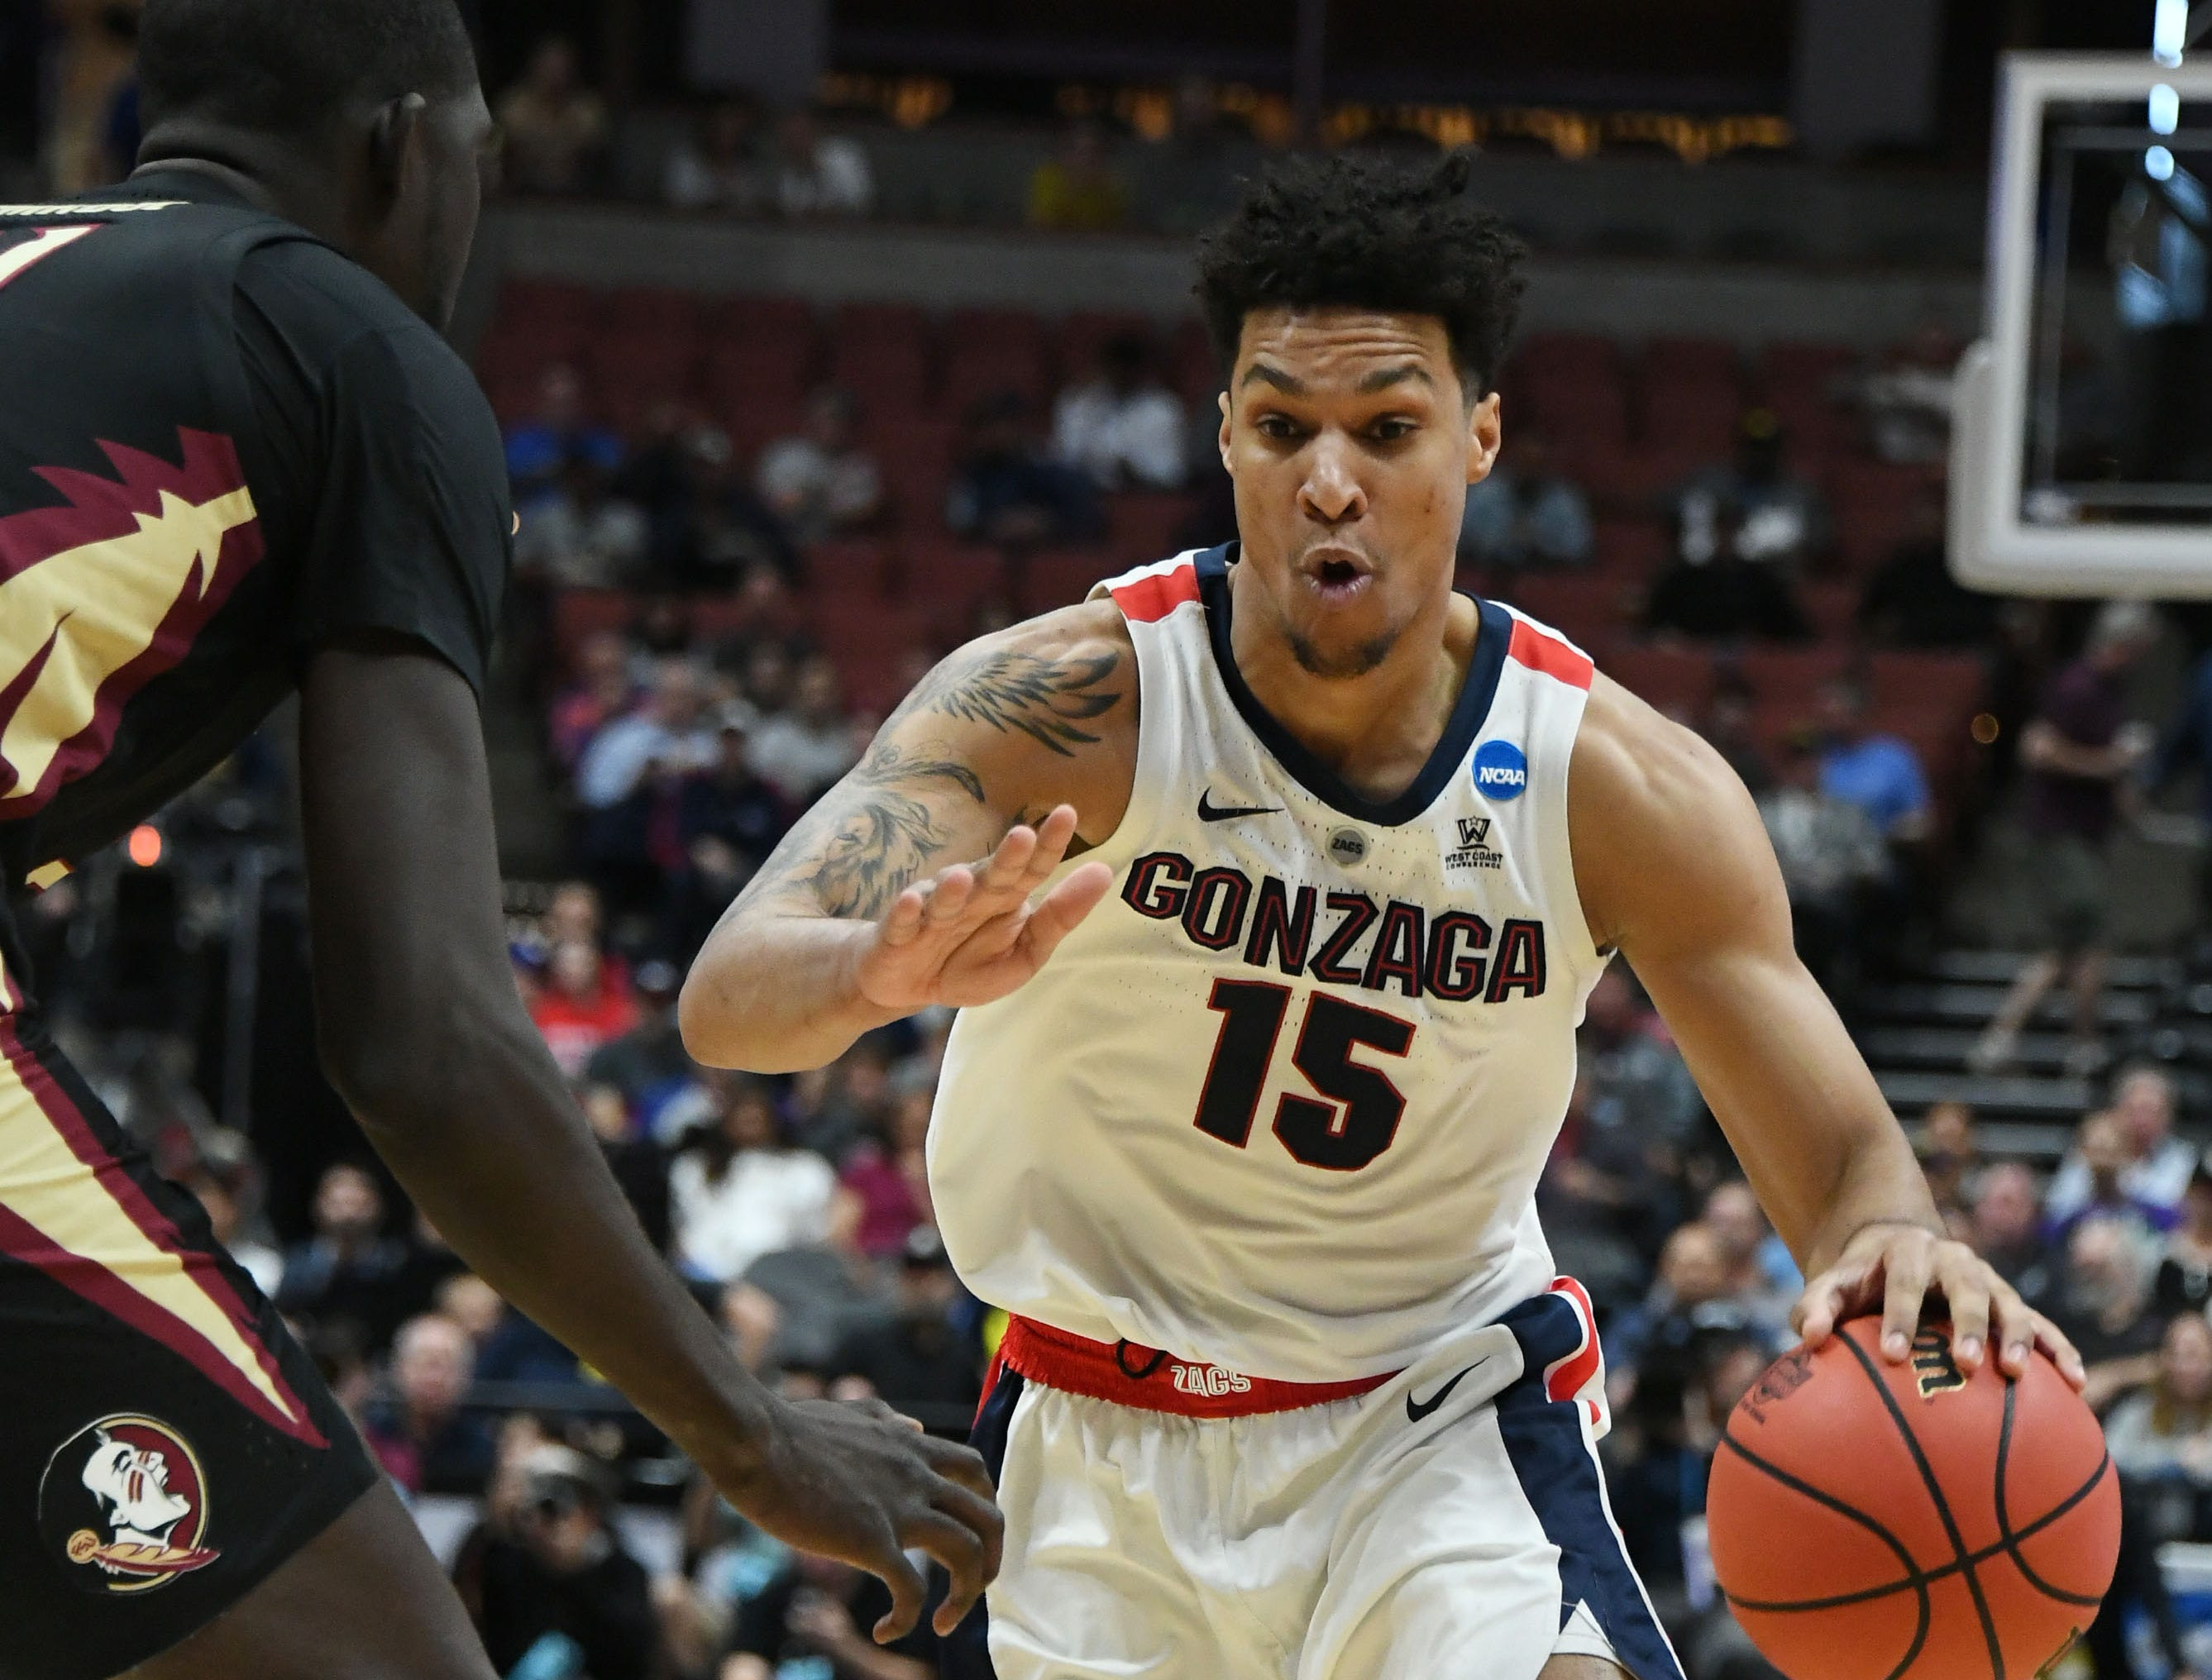 March 28, 2019; Anaheim, CA, USA; Gonzaga Bulldogs forward Brandon Clarke (15) moves to the basket against Florida State Seminoles center Christ Koumadje (21) during the first half in the semifinals of the west regional of the 2019 NCAA Tournament at Honda Center. Mandatory Credit: Richard Mackson-USA TODAY Sports